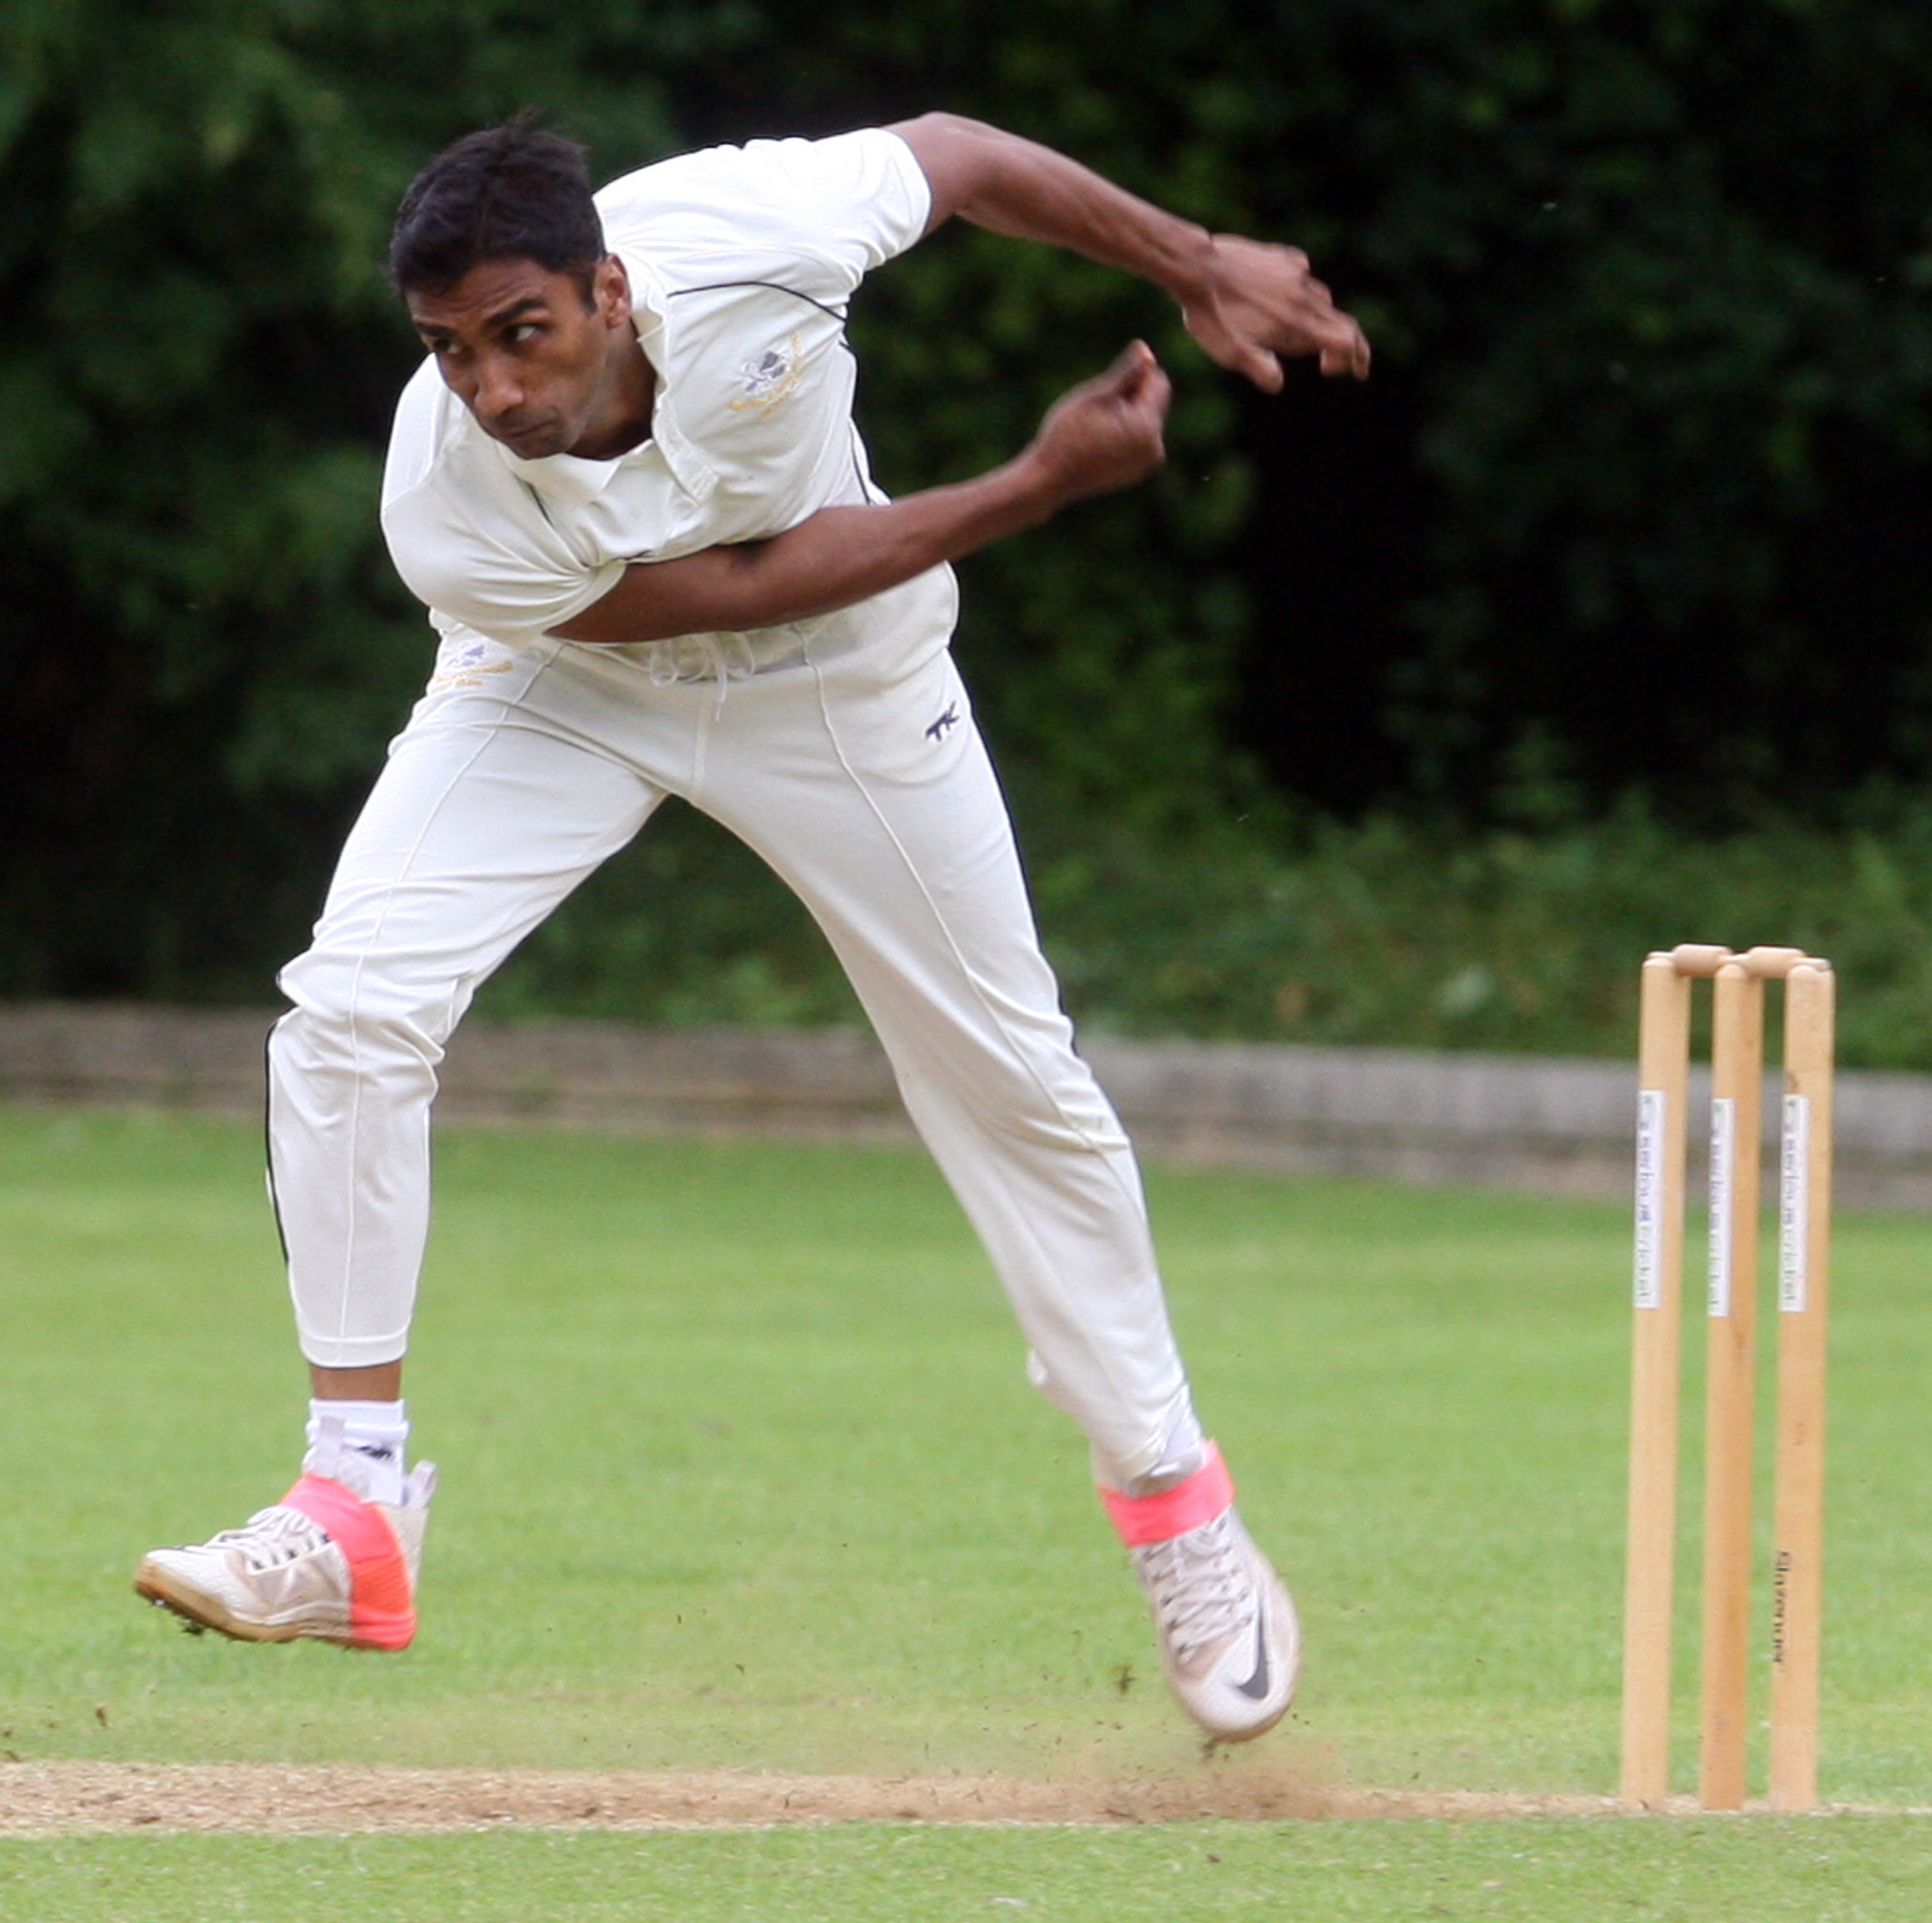 STAR MAN: Anupam Sanklecha took 63 wickets for Shipton-under-Wychwood in Division 2, including three eight-wicket hauls